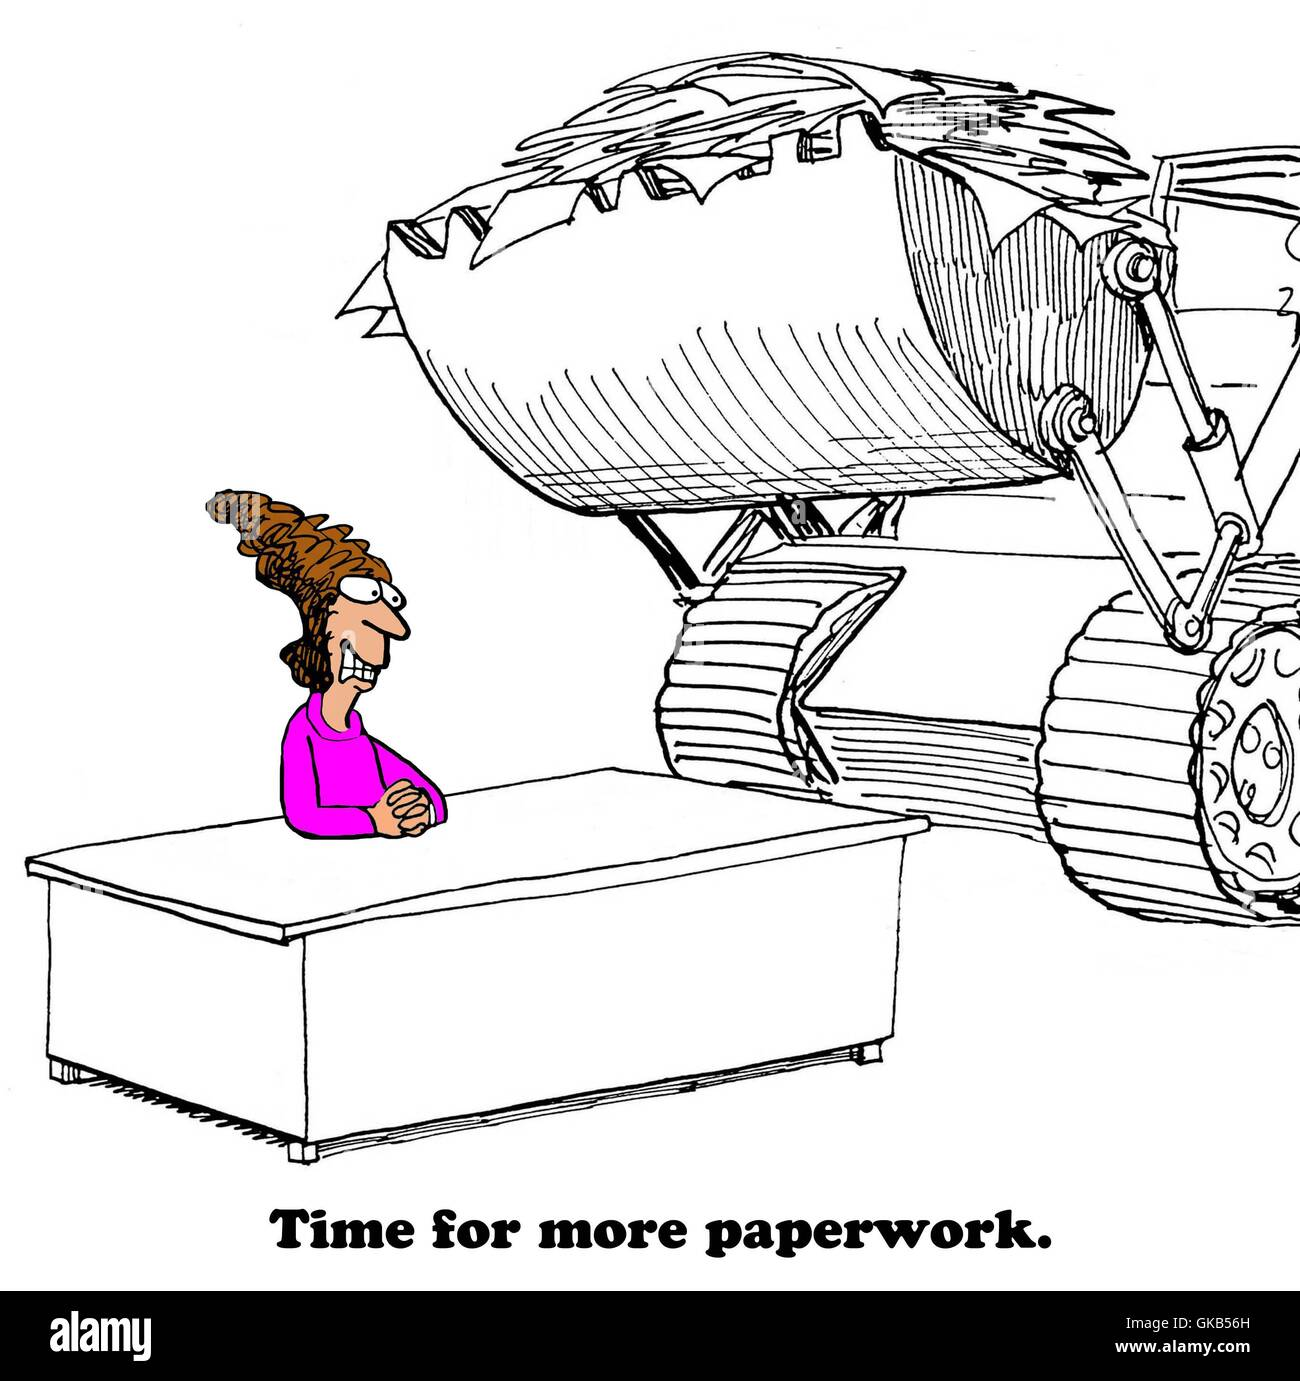 Image result for paperwork